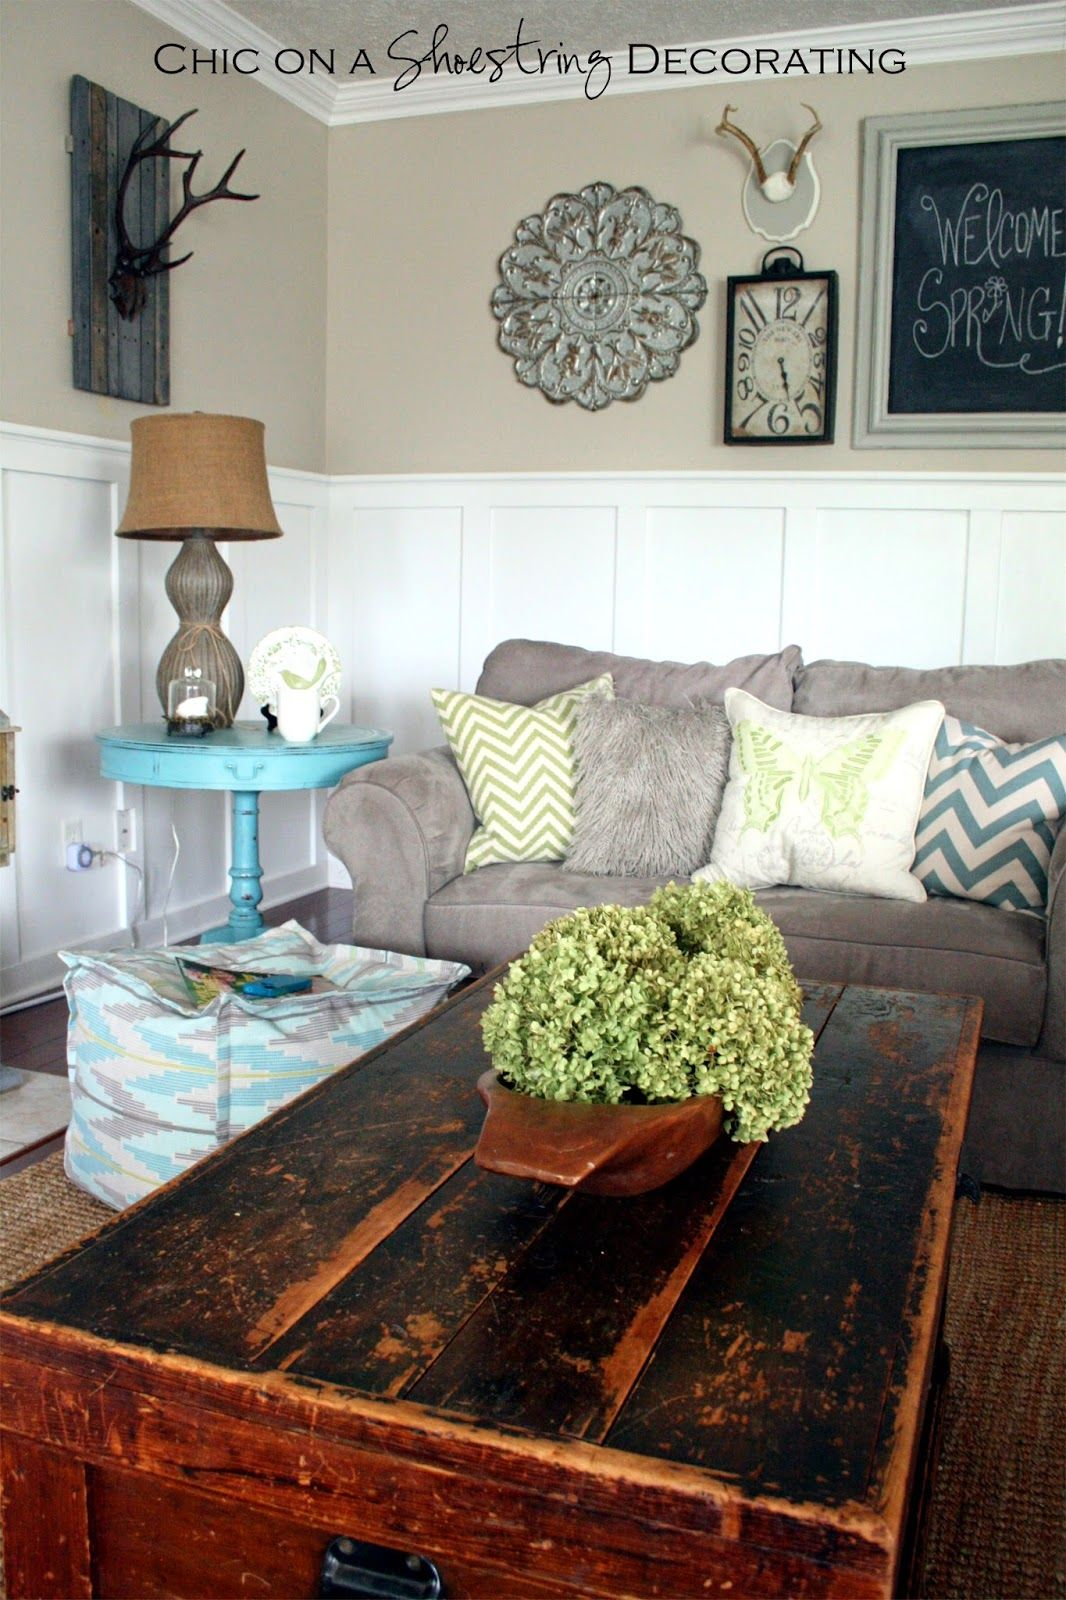 Farmhouse Chic Living Room Decor: My Farmhouse Chic Living Room Reveal. I Love The Old Trunk